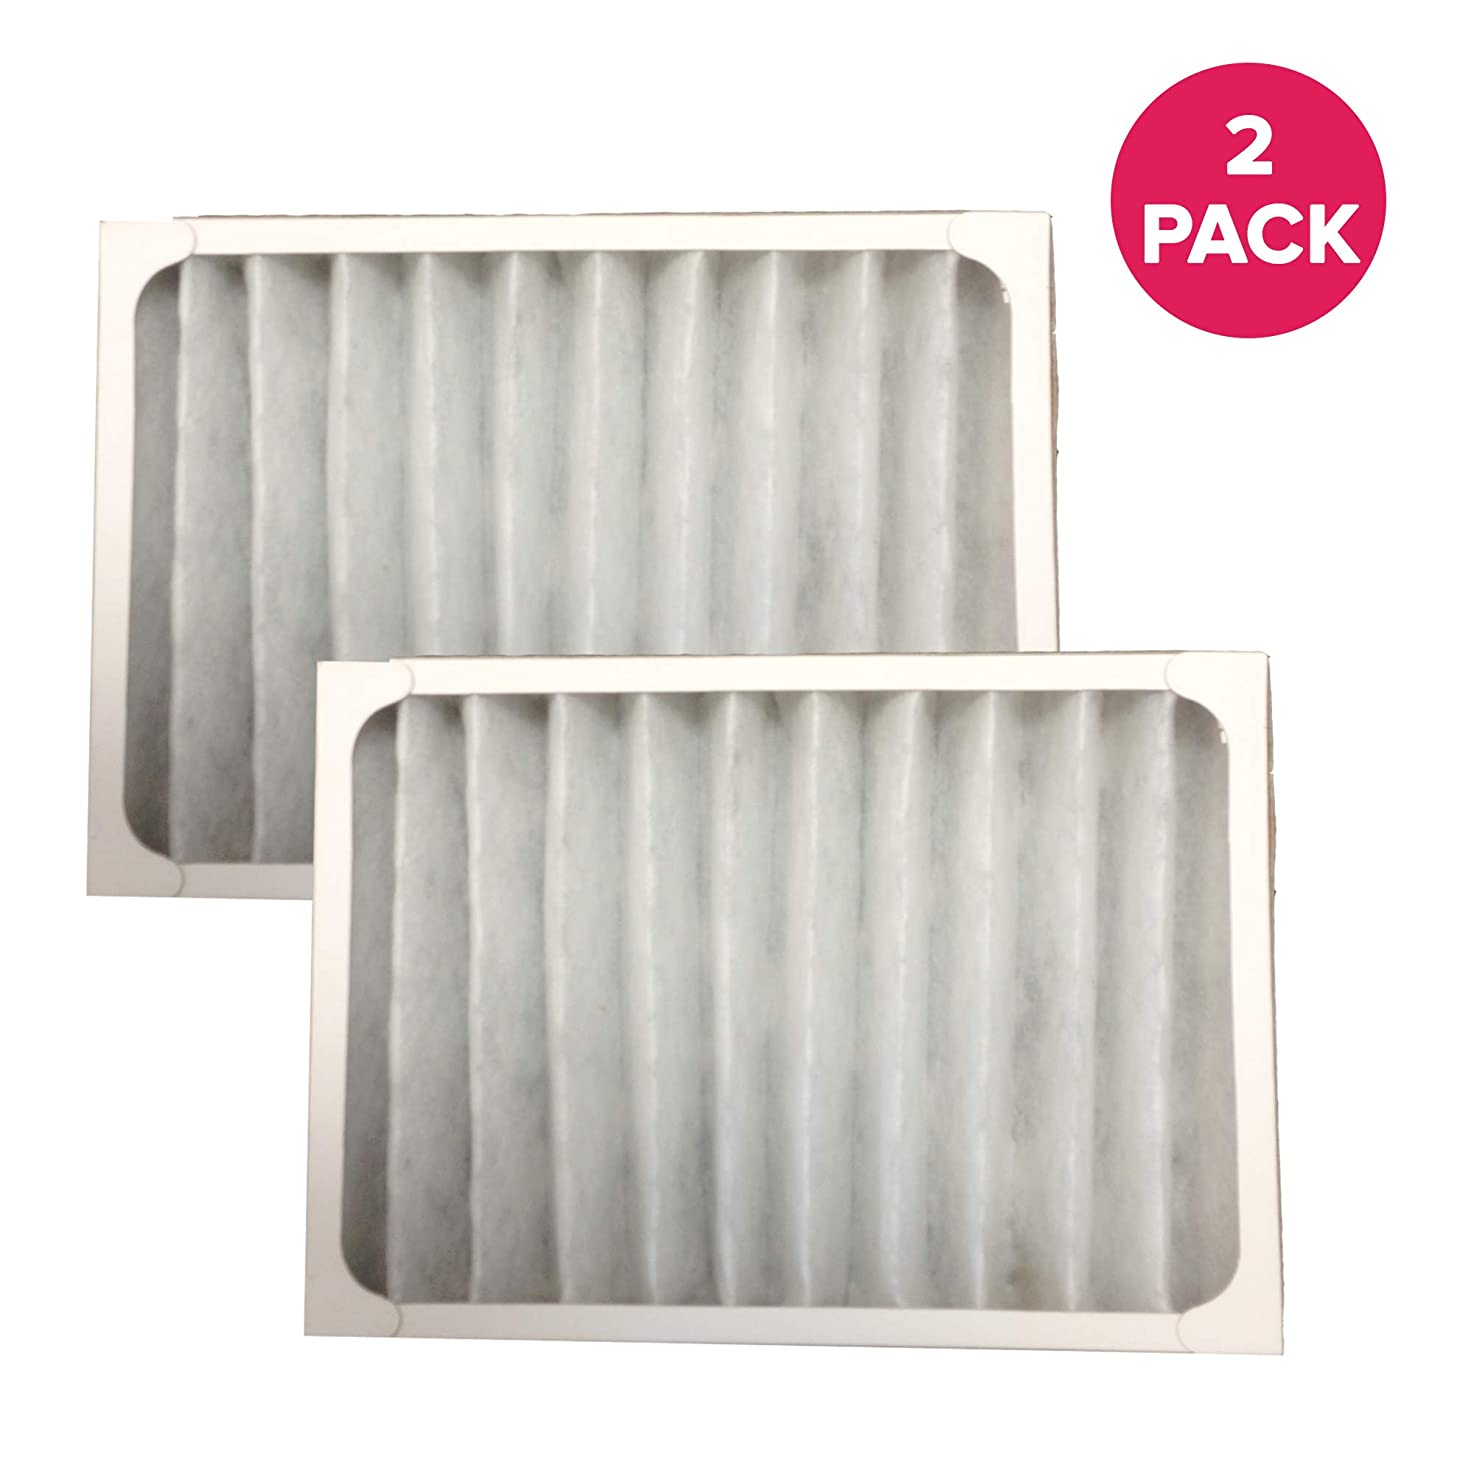 Crucial Air Replacement Filter Compatible with Hunter Part # 30928 Air Purifier Filter, Compatible with 30057, 30059, 30067, 30078, 30079, 30124 & 30126 Air Purifier Model – Bulk (2 Pack)